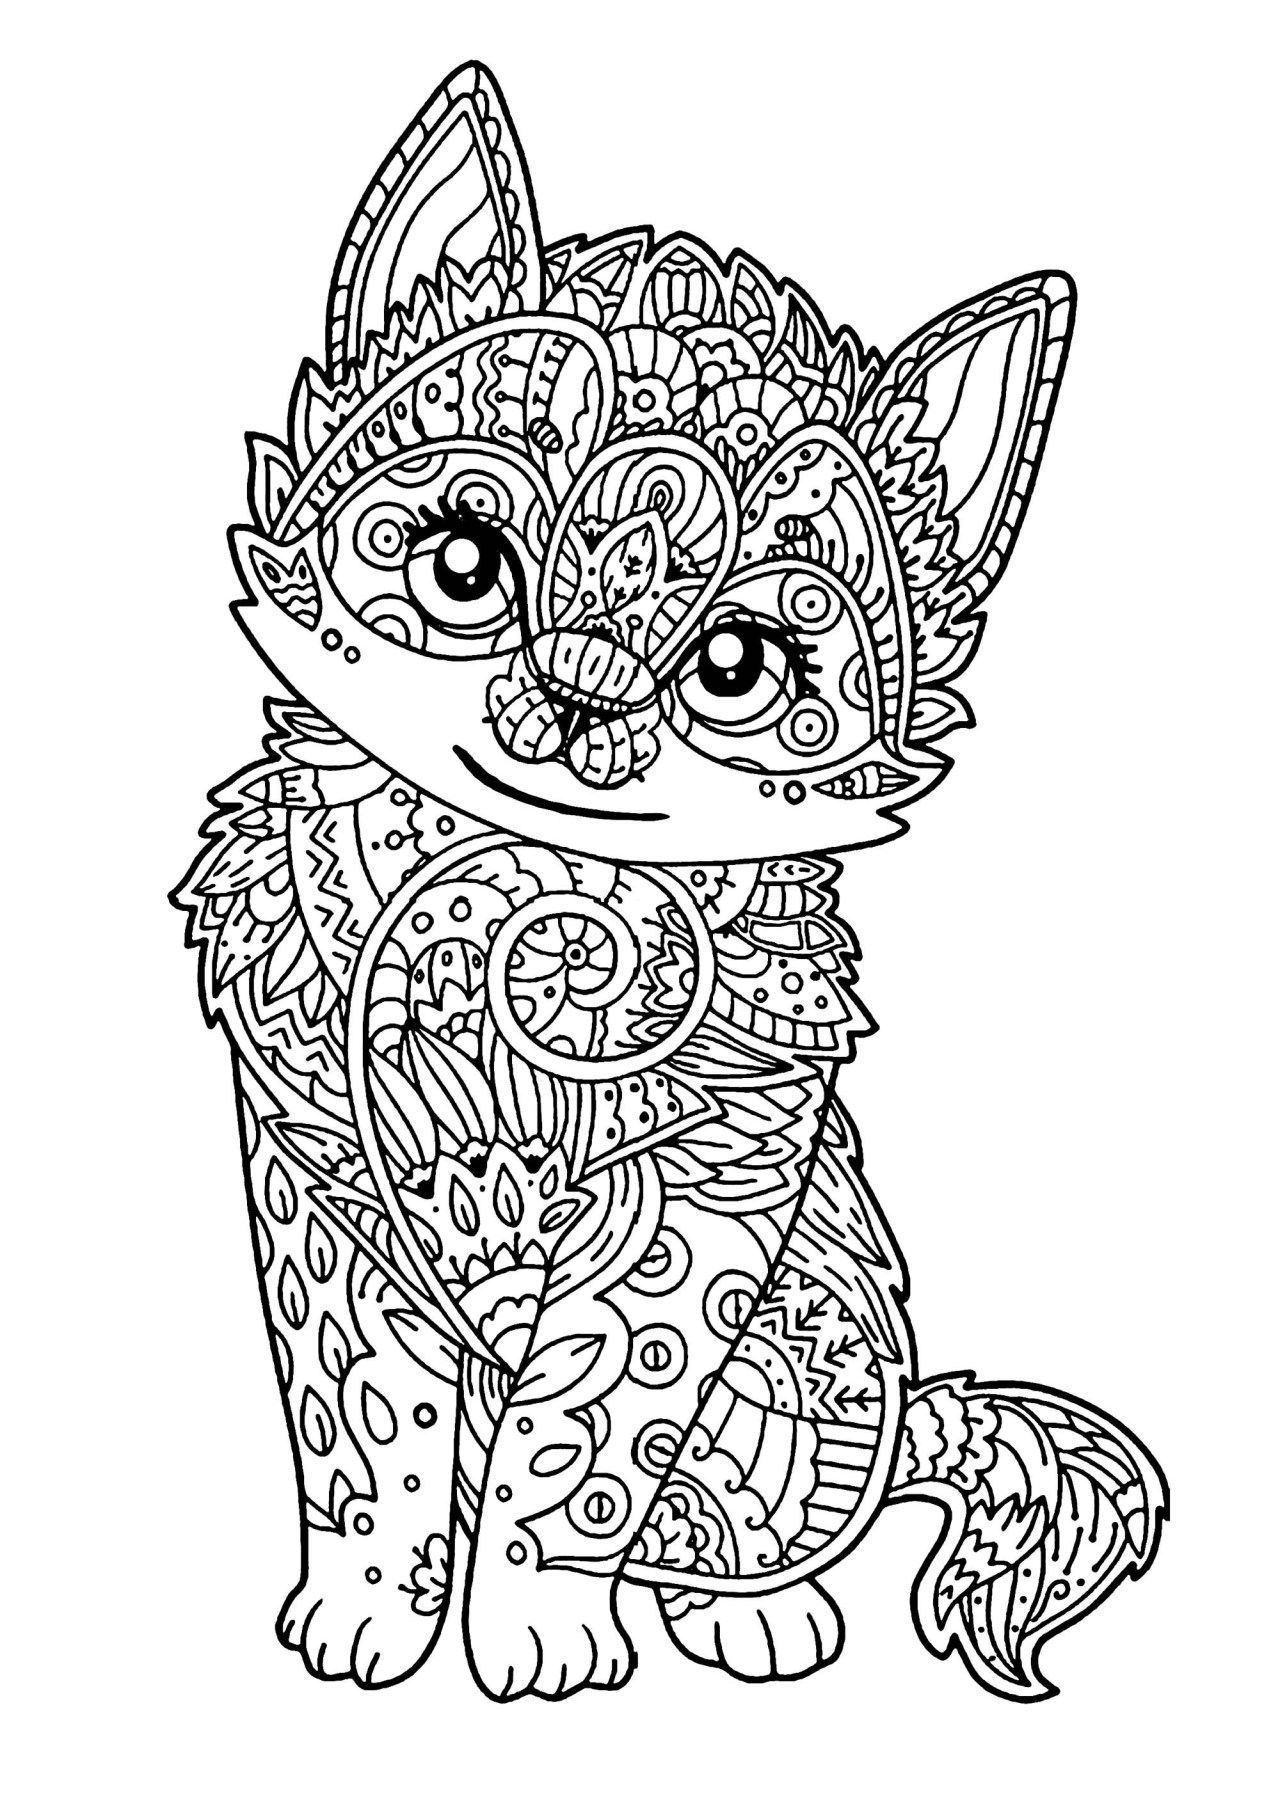 Coloring Pages Of Cats Coloring Pages Cats Cat Color Printable Kitten 10001321 Attachment Entitlementtrap Com Cat Coloring Book Cat Coloring Page Animal Coloring Books